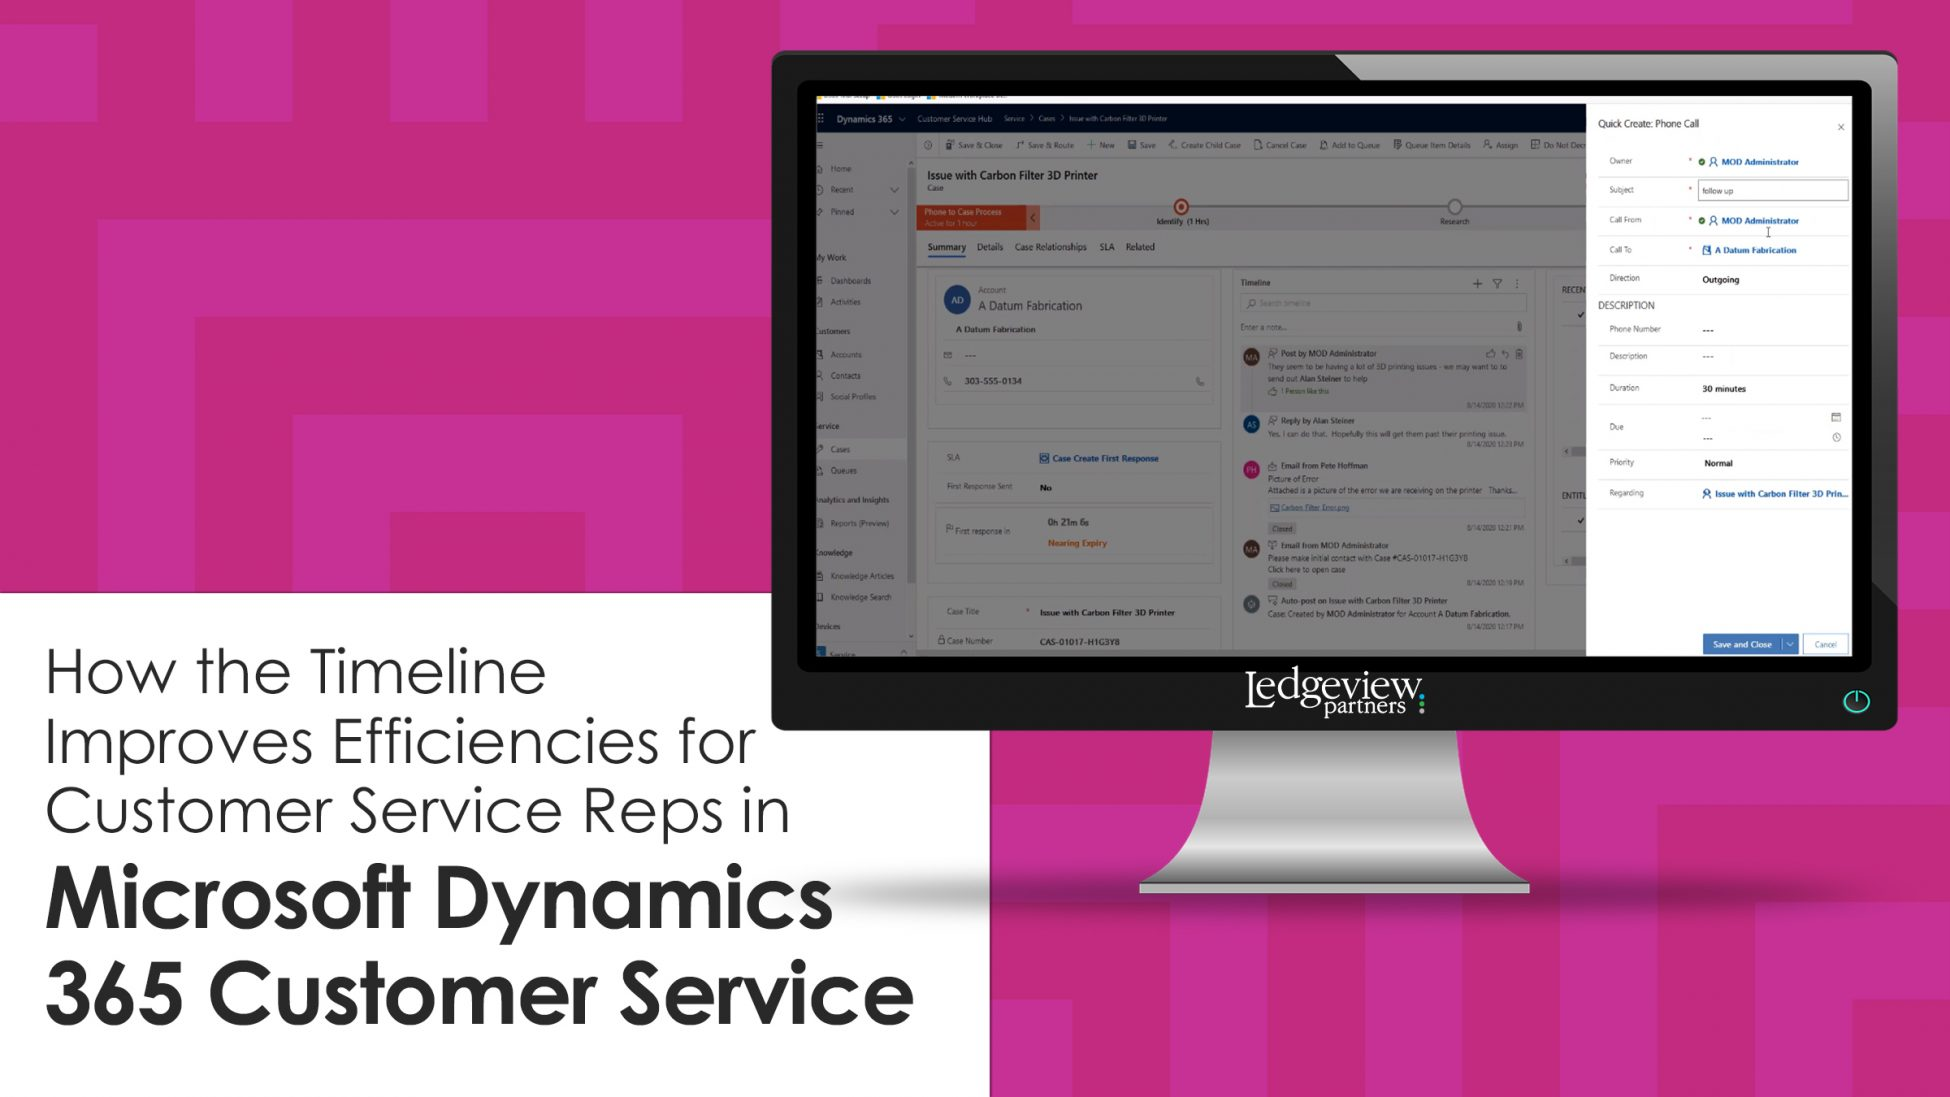 How the Timeline Improves Efficiencies for Customer Service Reps in Microsoft Dynamics 365 Customer Service